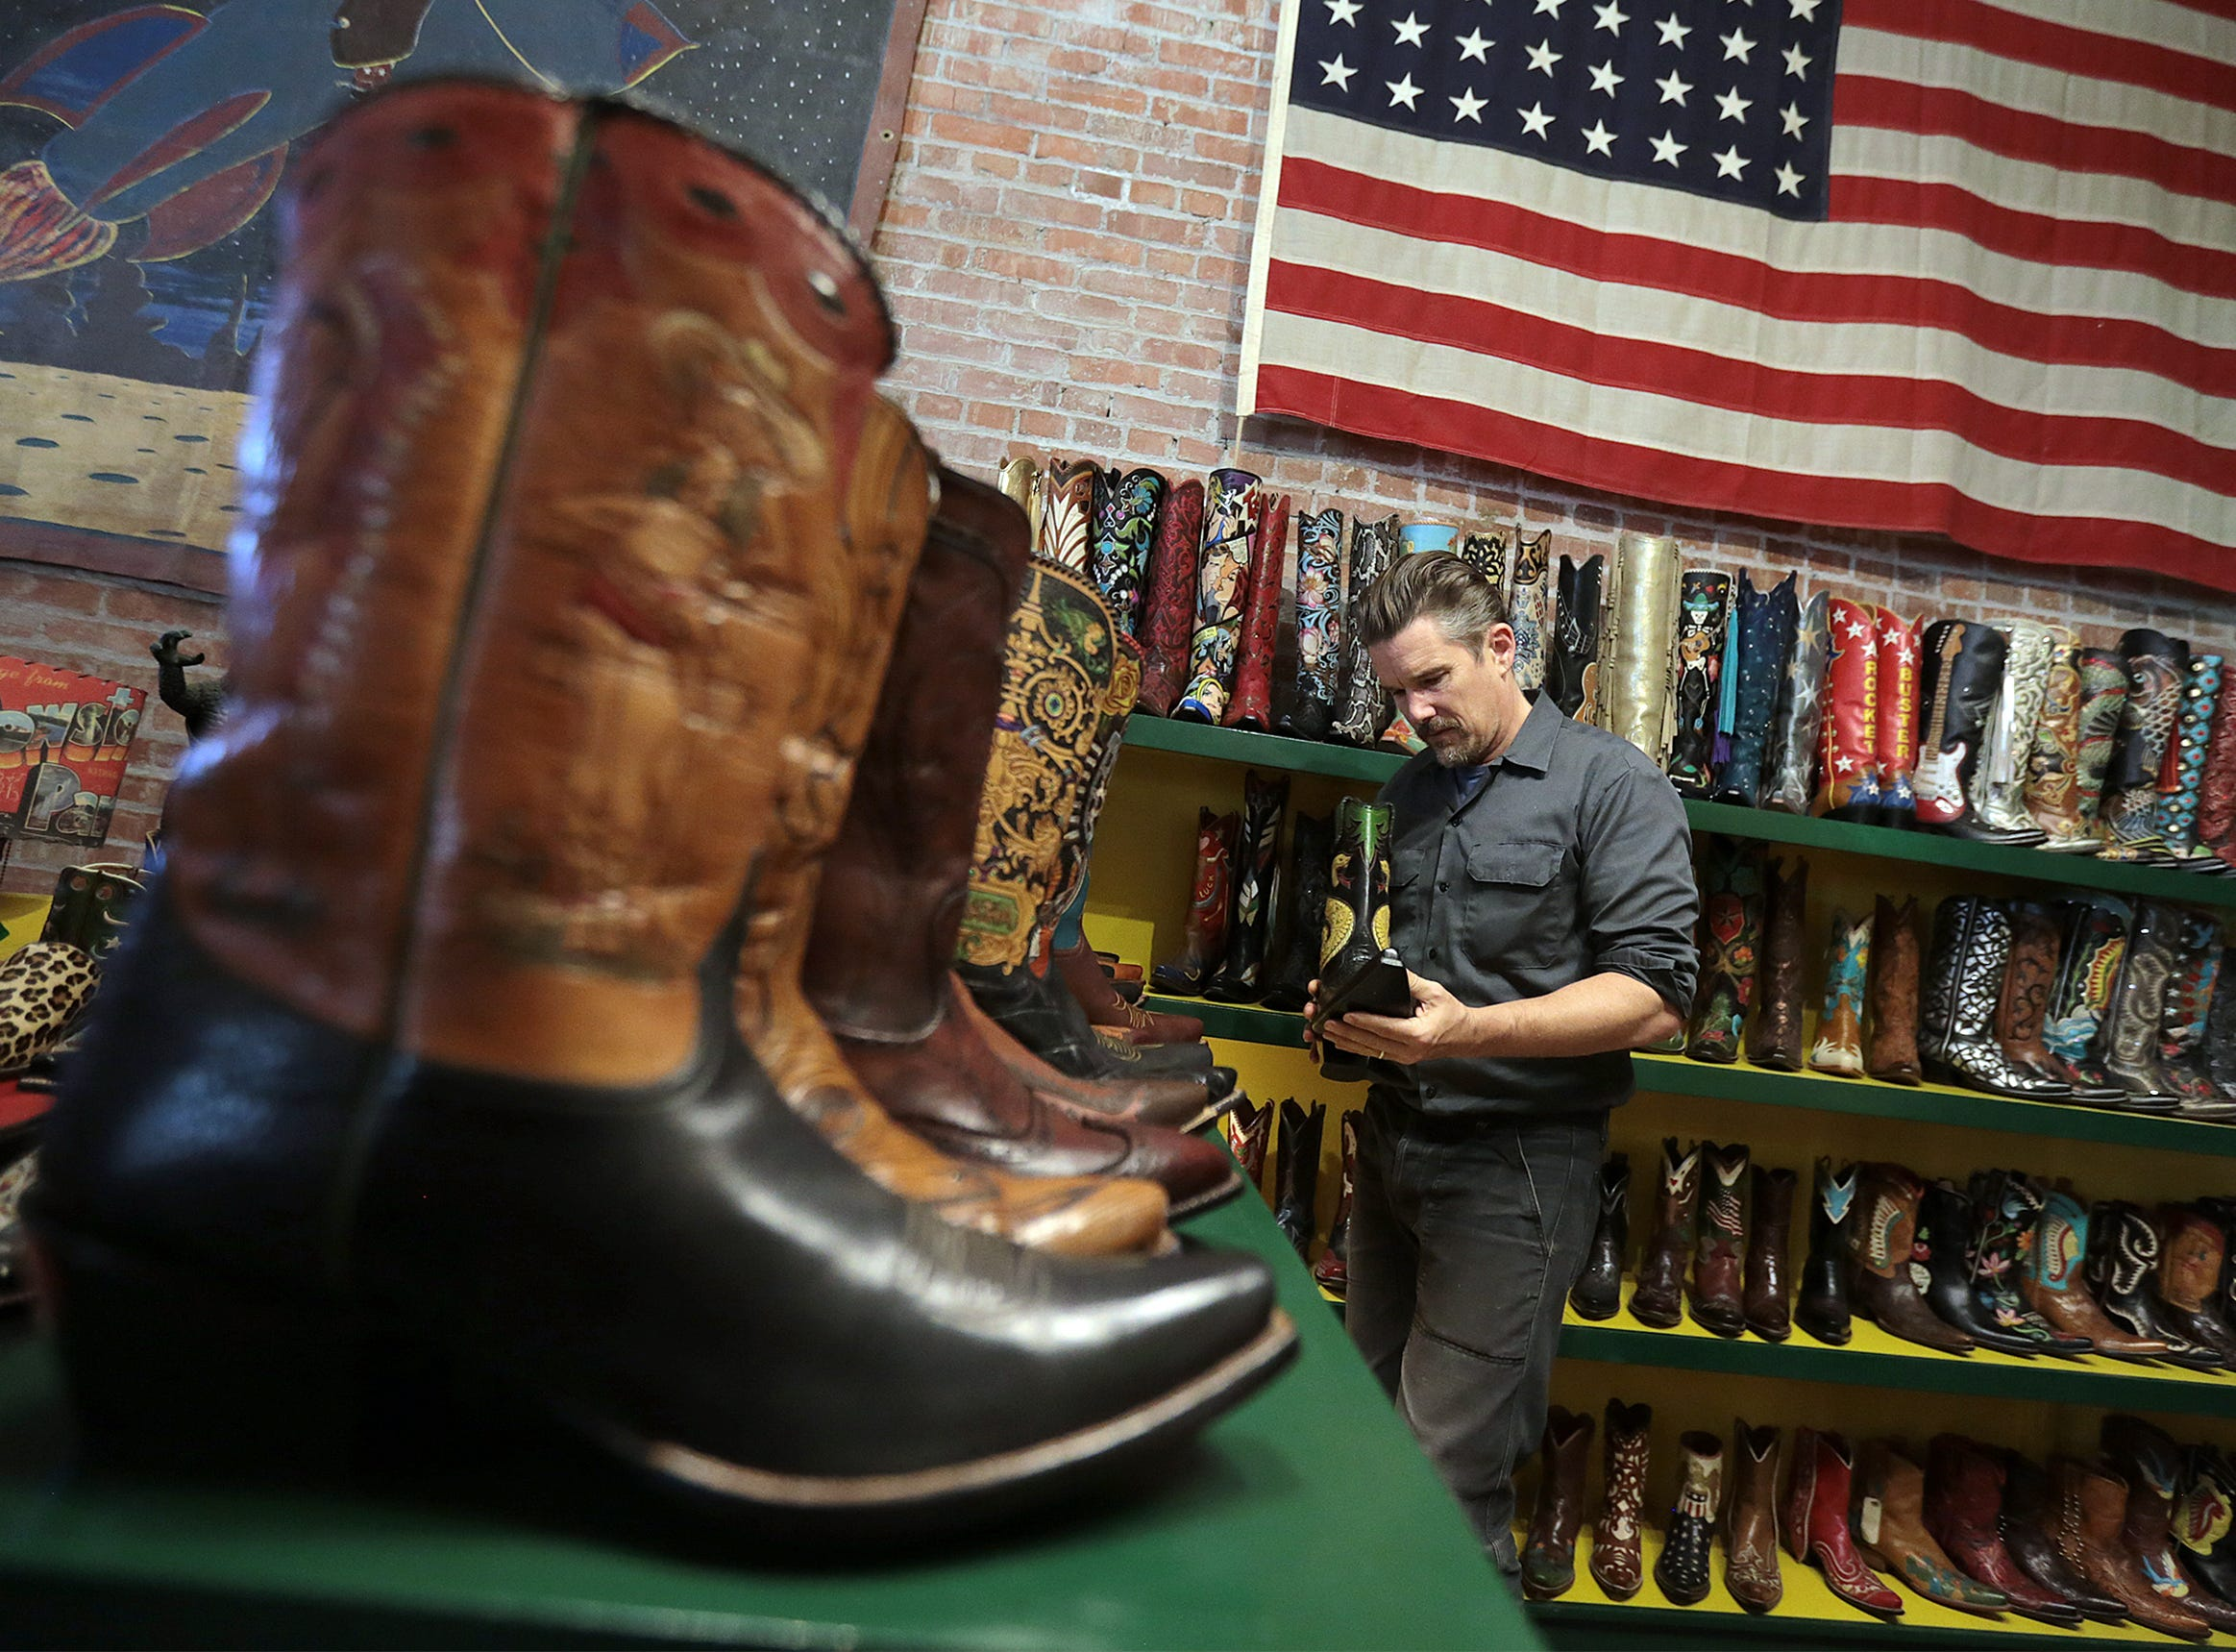 "Actor/director Ethan Hawke peruses the boots at Rocketbuster Boots in Downtown El Paso on Tuesday. Hawke, who directed and co-wrote the film ""Blaze"" about Texas musician Blaze Foley, was in town promoting the film."